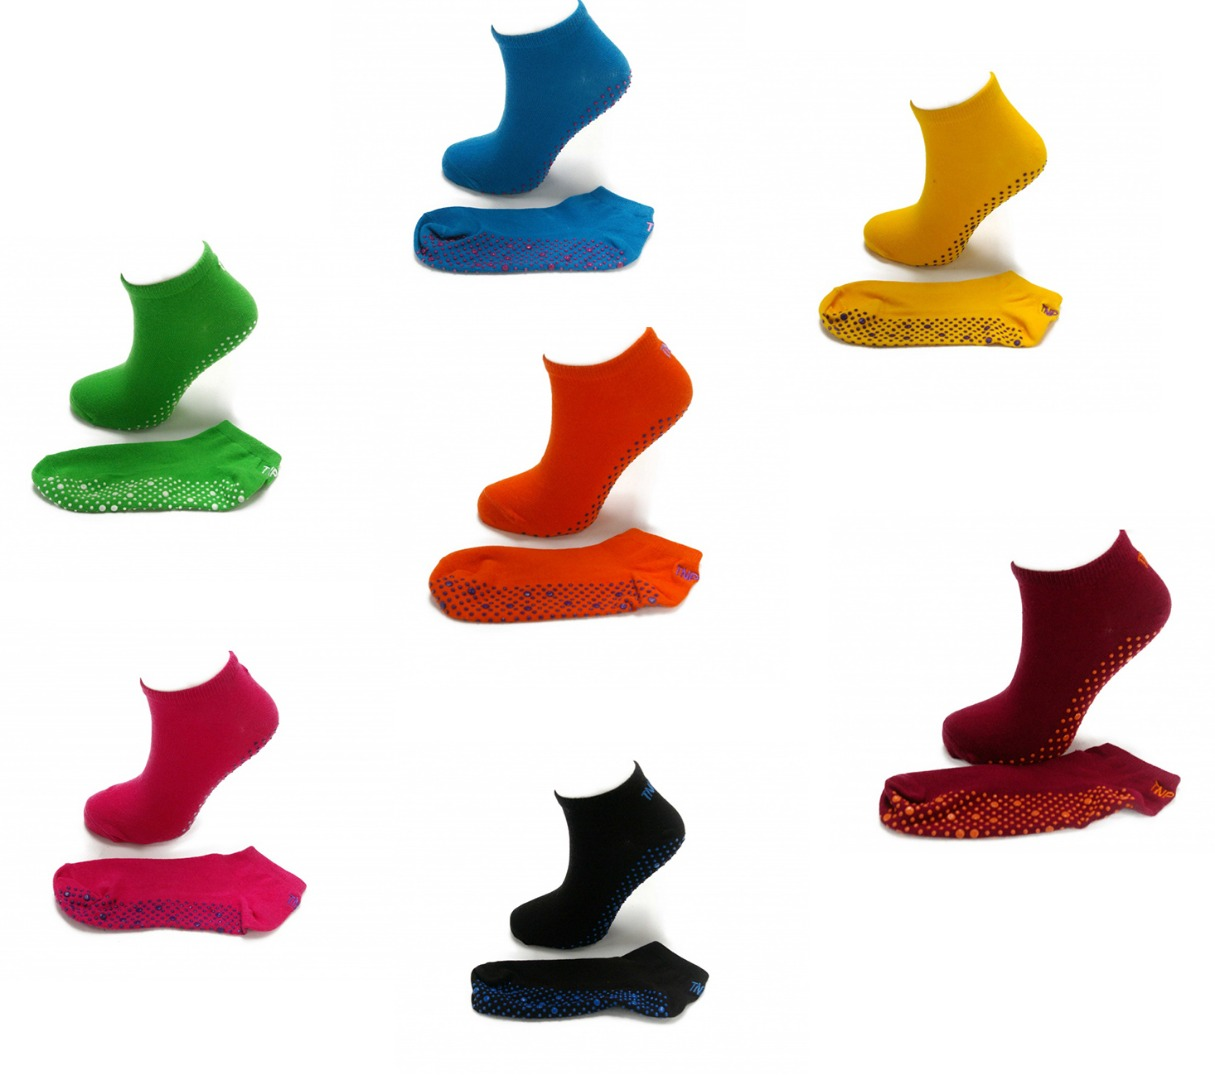 Pilates Yoga, Fitness, Dance Gym. Anti-slip / Non-slip, Massage Grip Socks